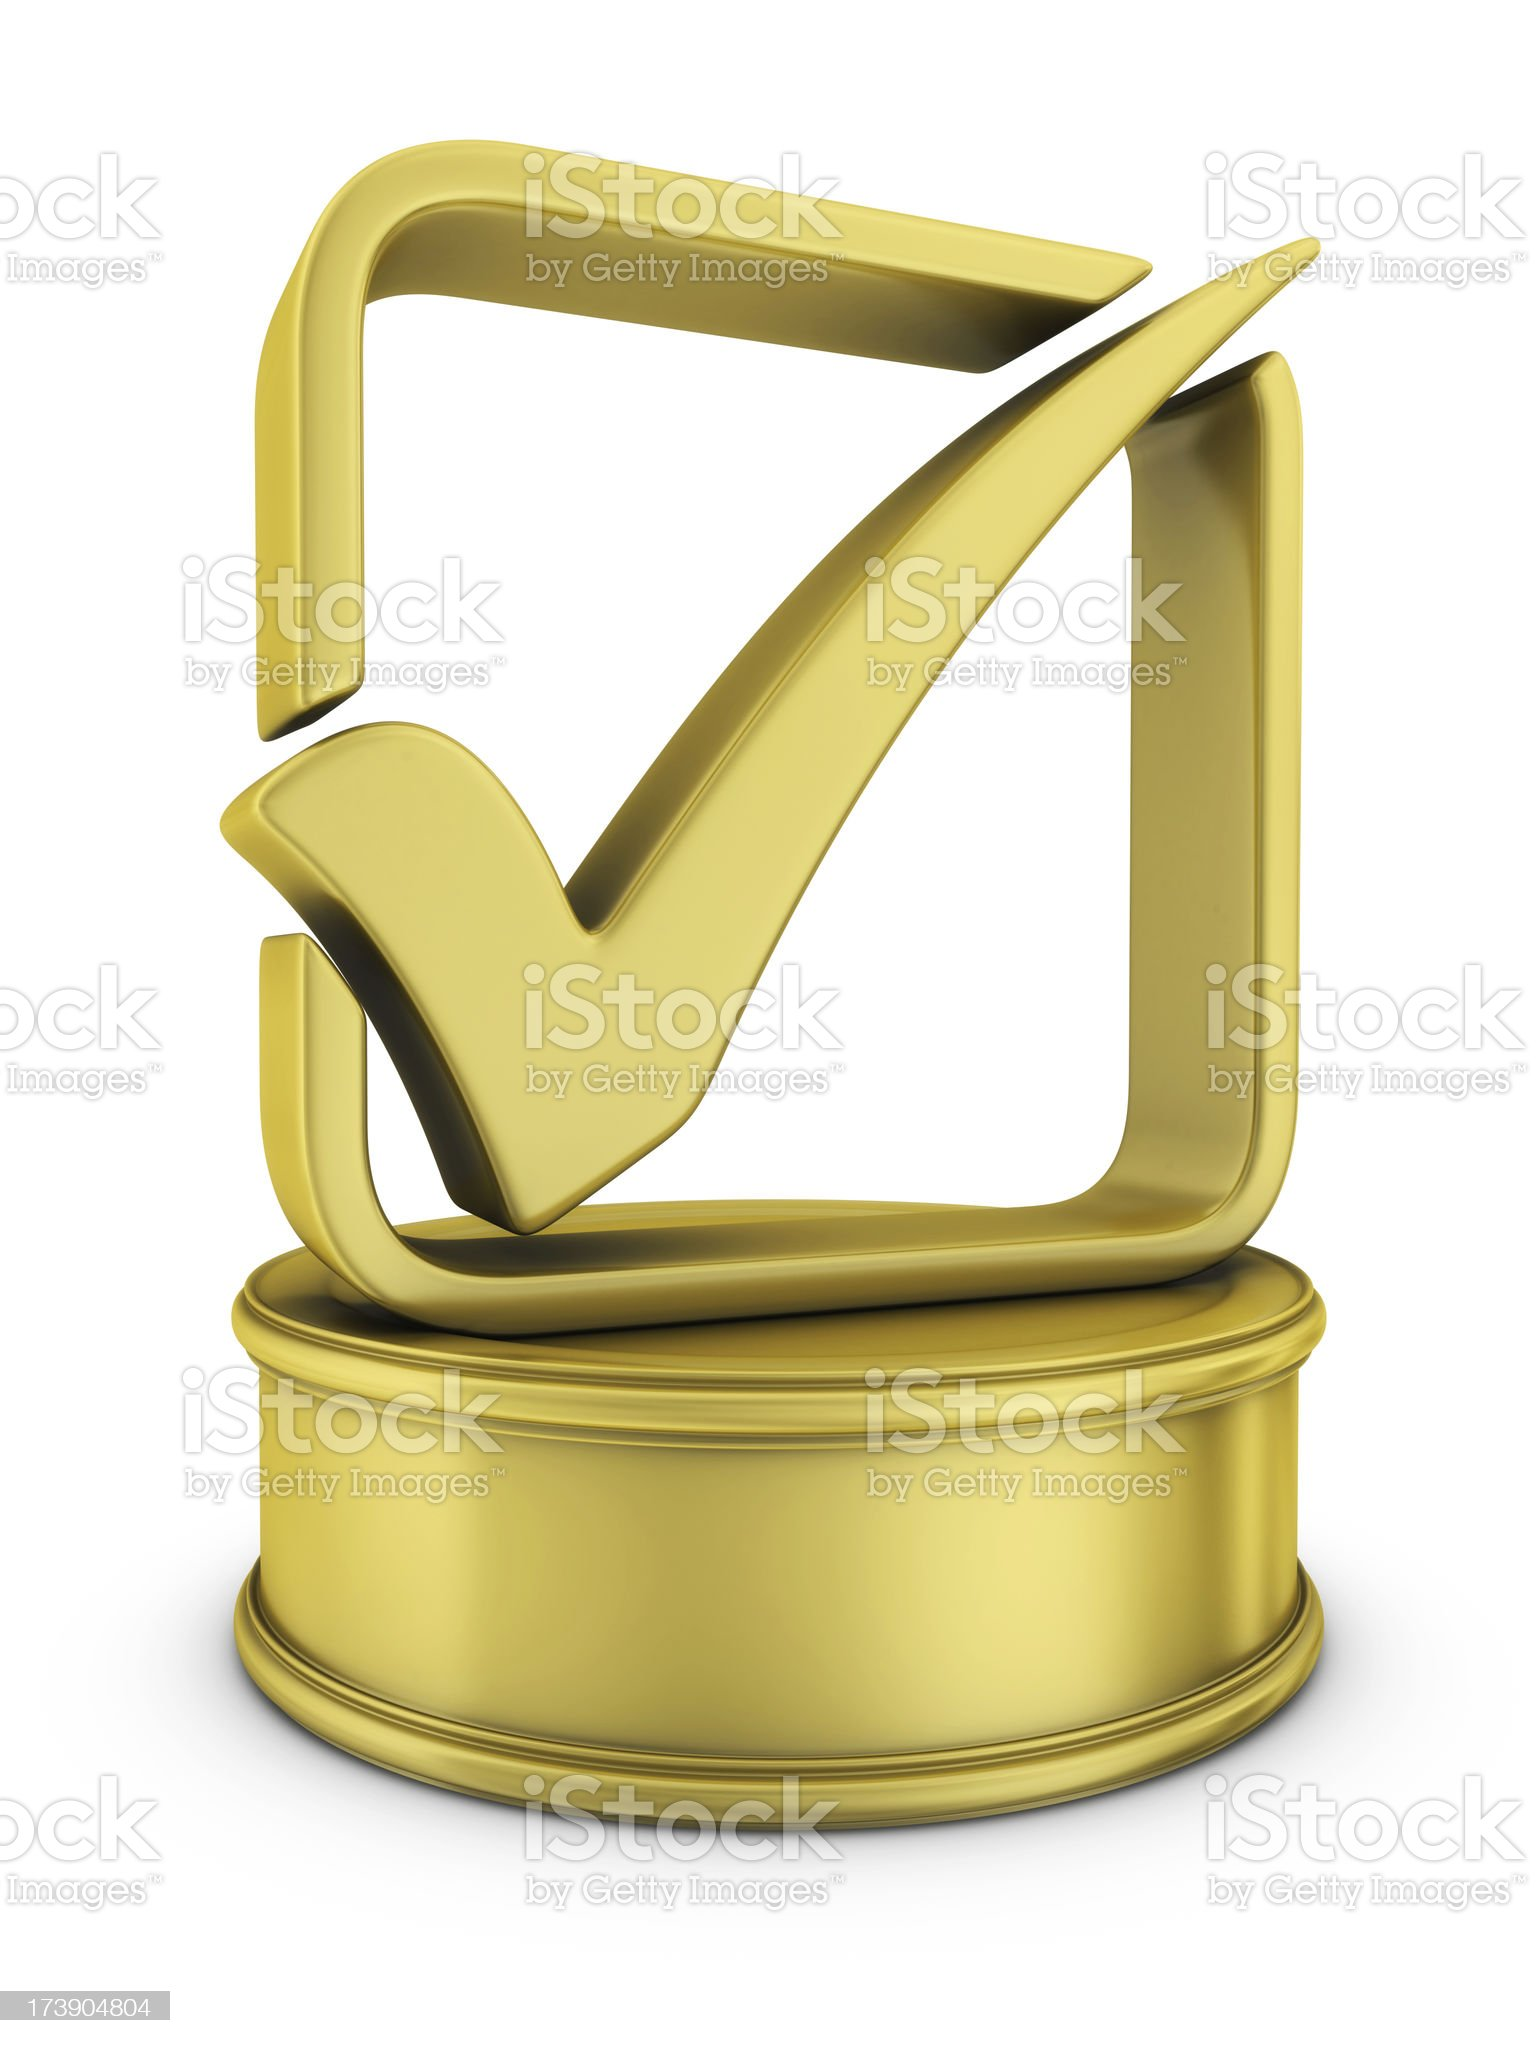 gold check mark award royalty-free stock photo